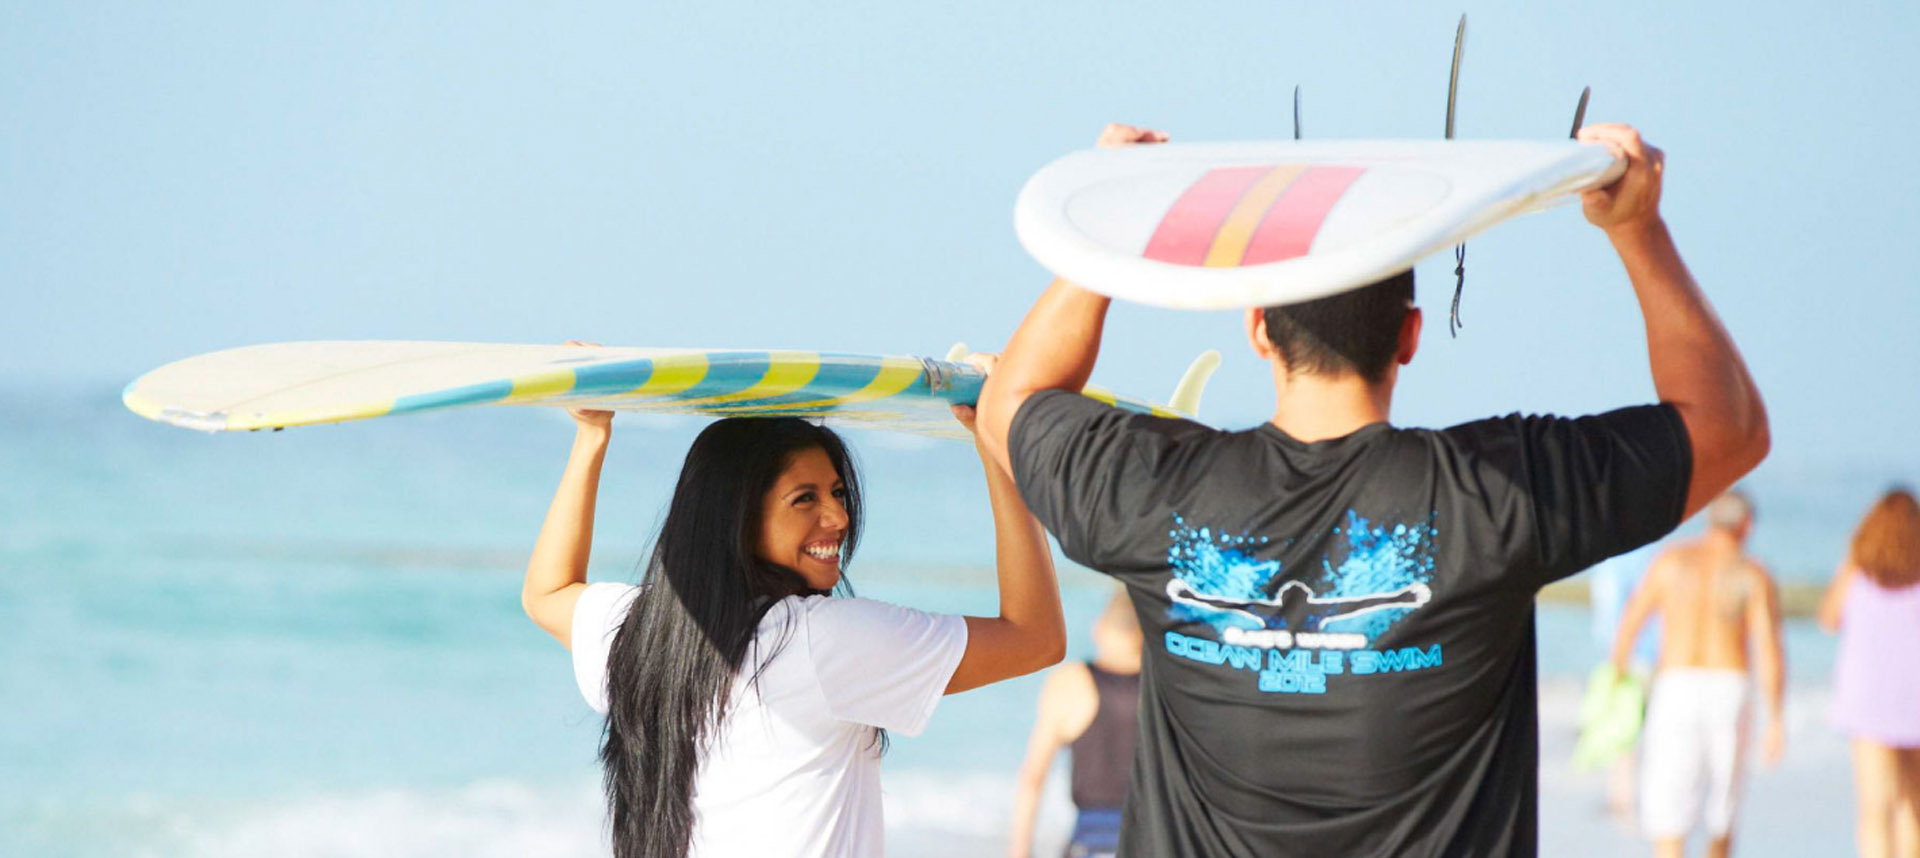 Friends carrying surfboards above their heads